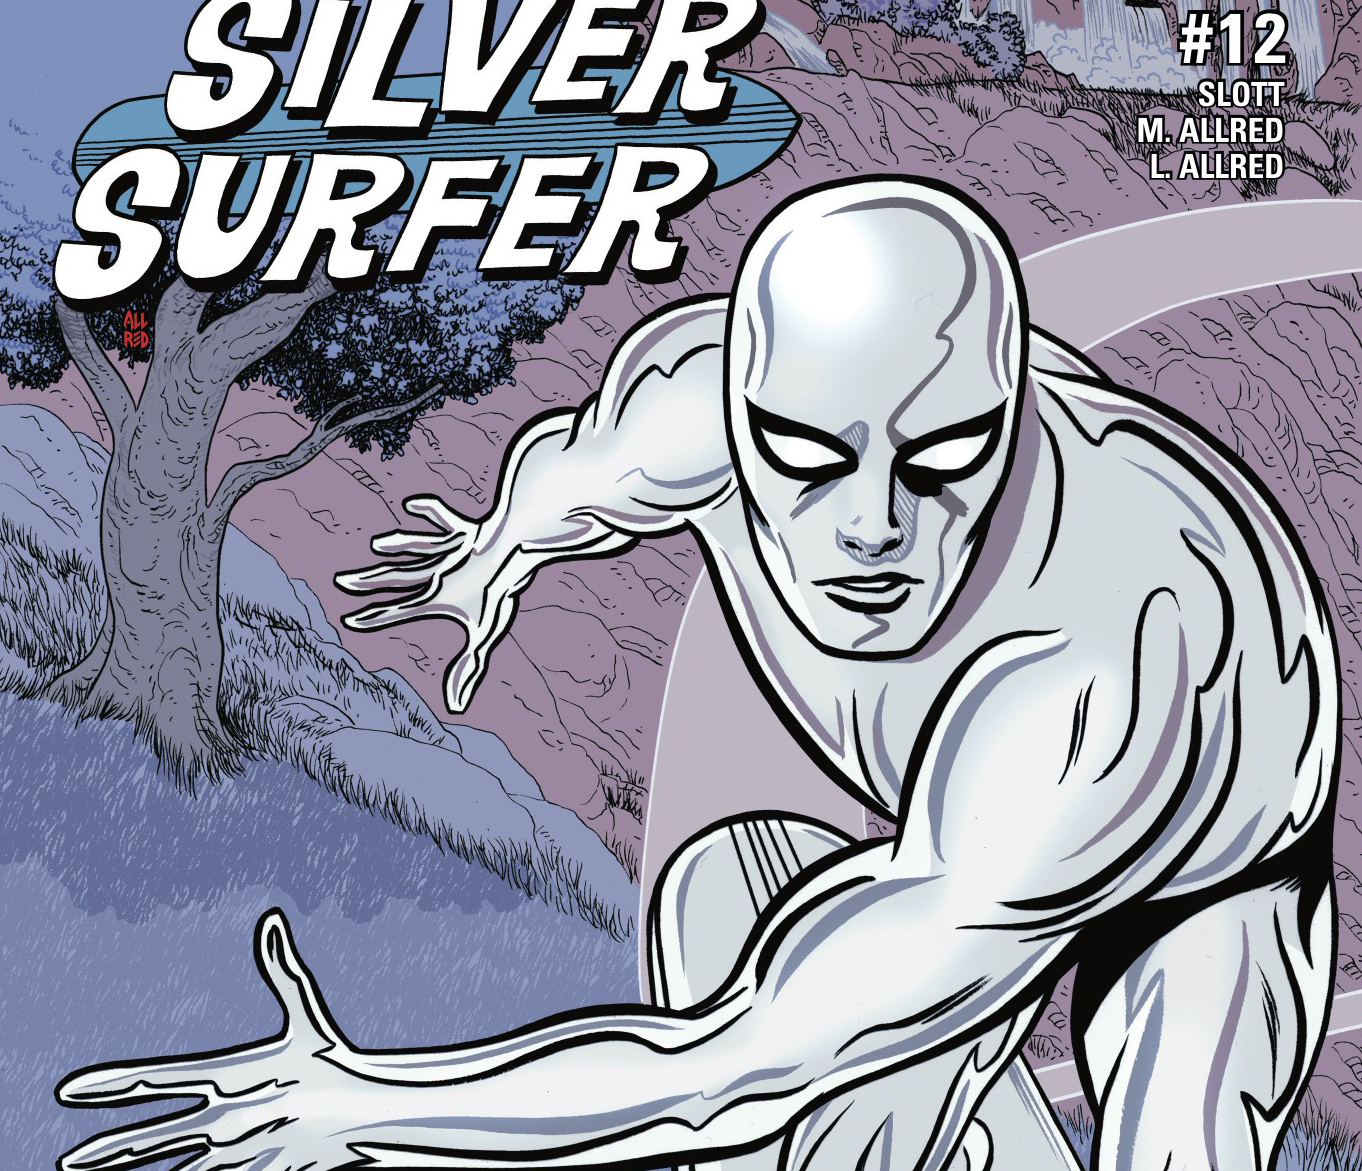 [EXCLUSIVE] Marvel Preview: Silver Surfer #12